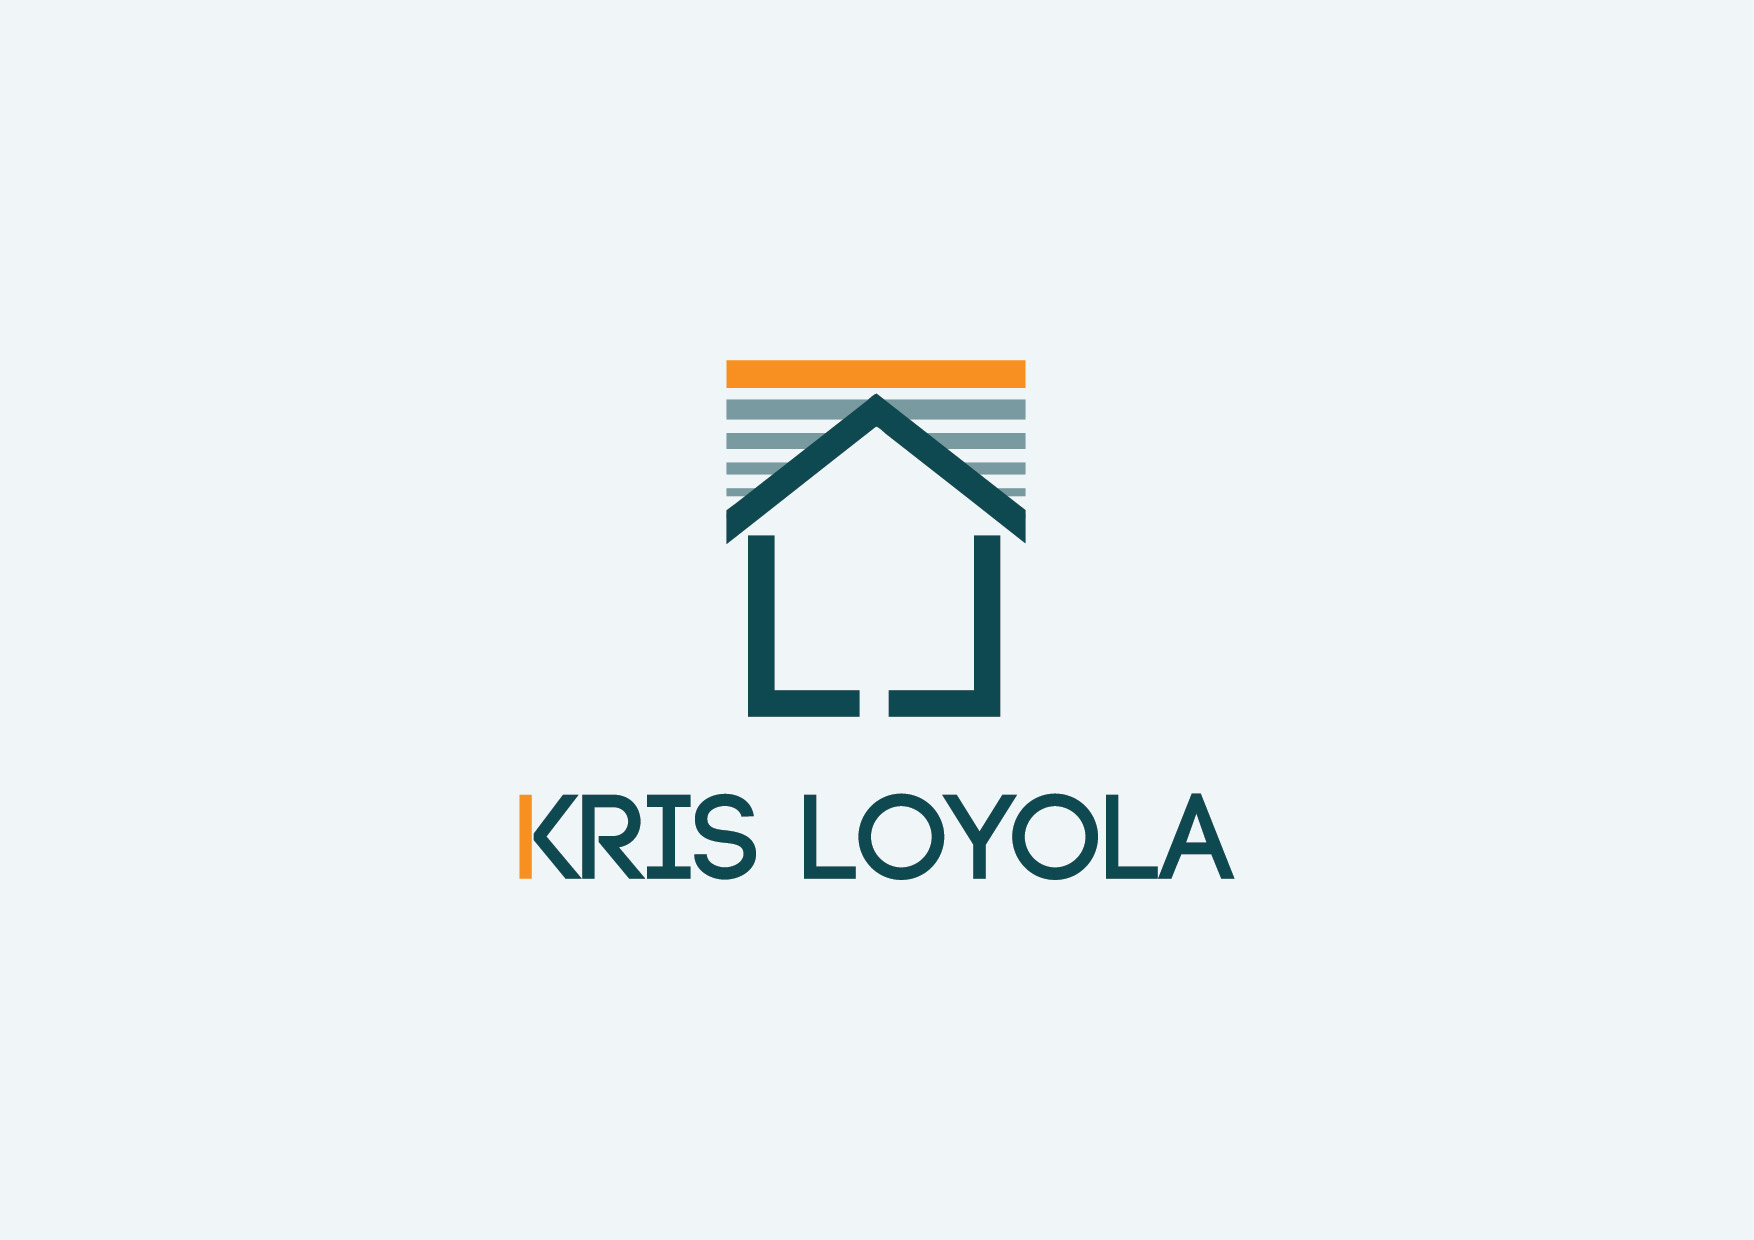 Logo Design by Bojan Oreskovic - Entry No. 162 in the Logo Design Contest Kris Loyola Logo Design.